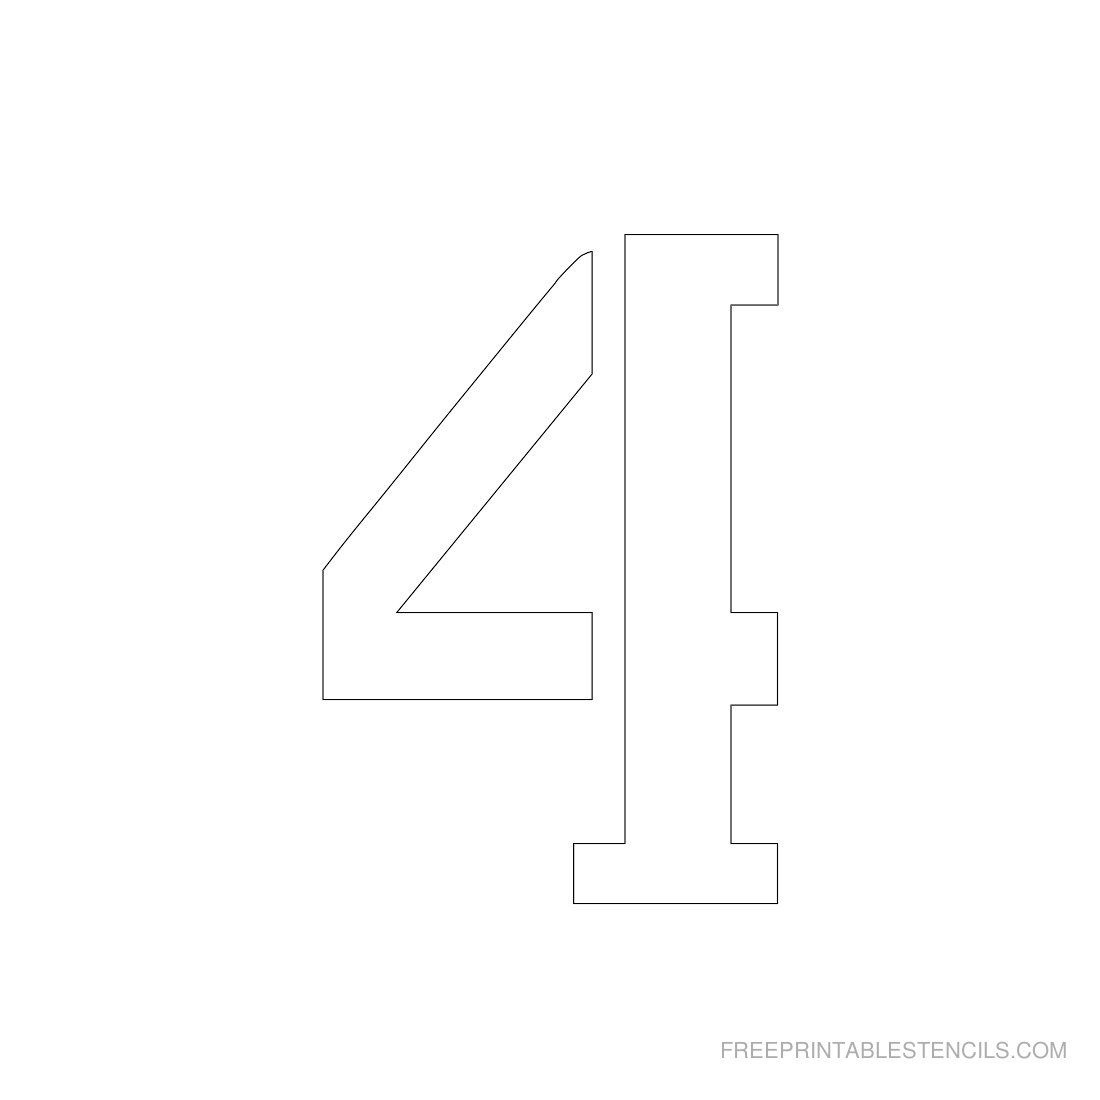 Printable 3 Inch Number Stencil 4 | Stencles | Number Stencils - Free Printable 4 Inch Number Stencils